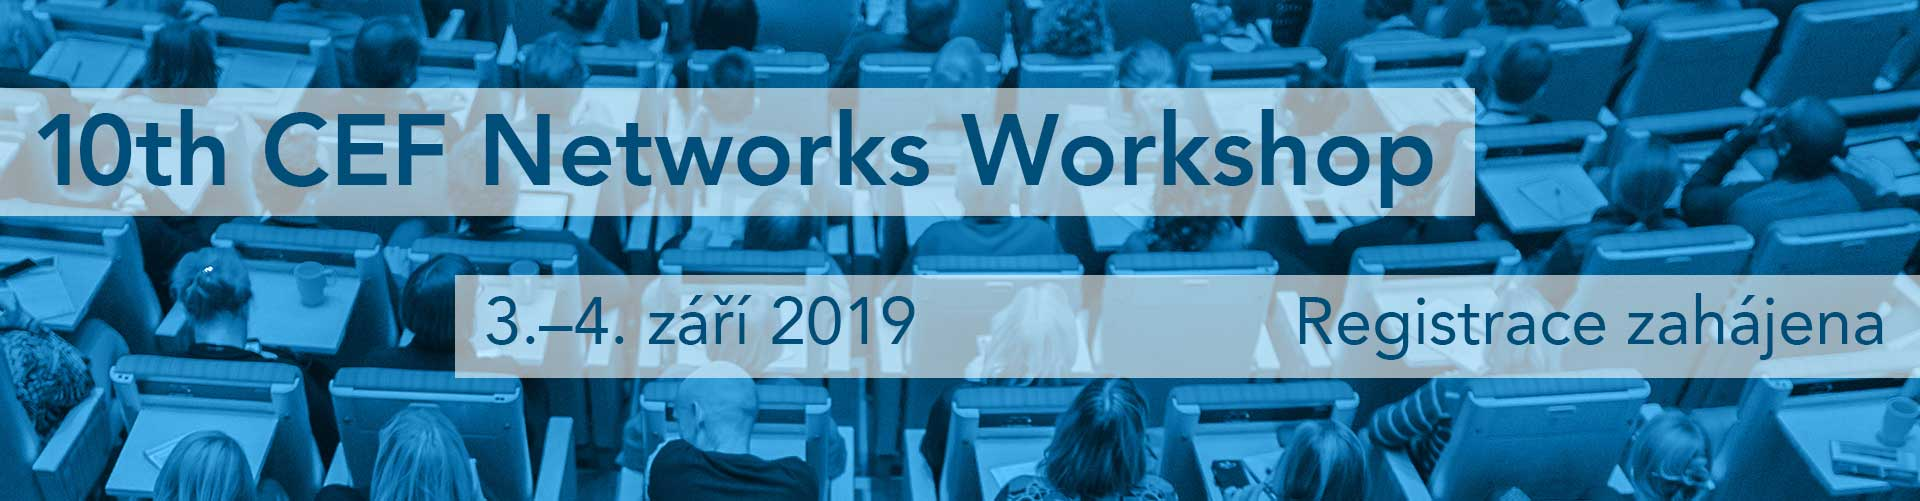 10th CEF Networks Workshop